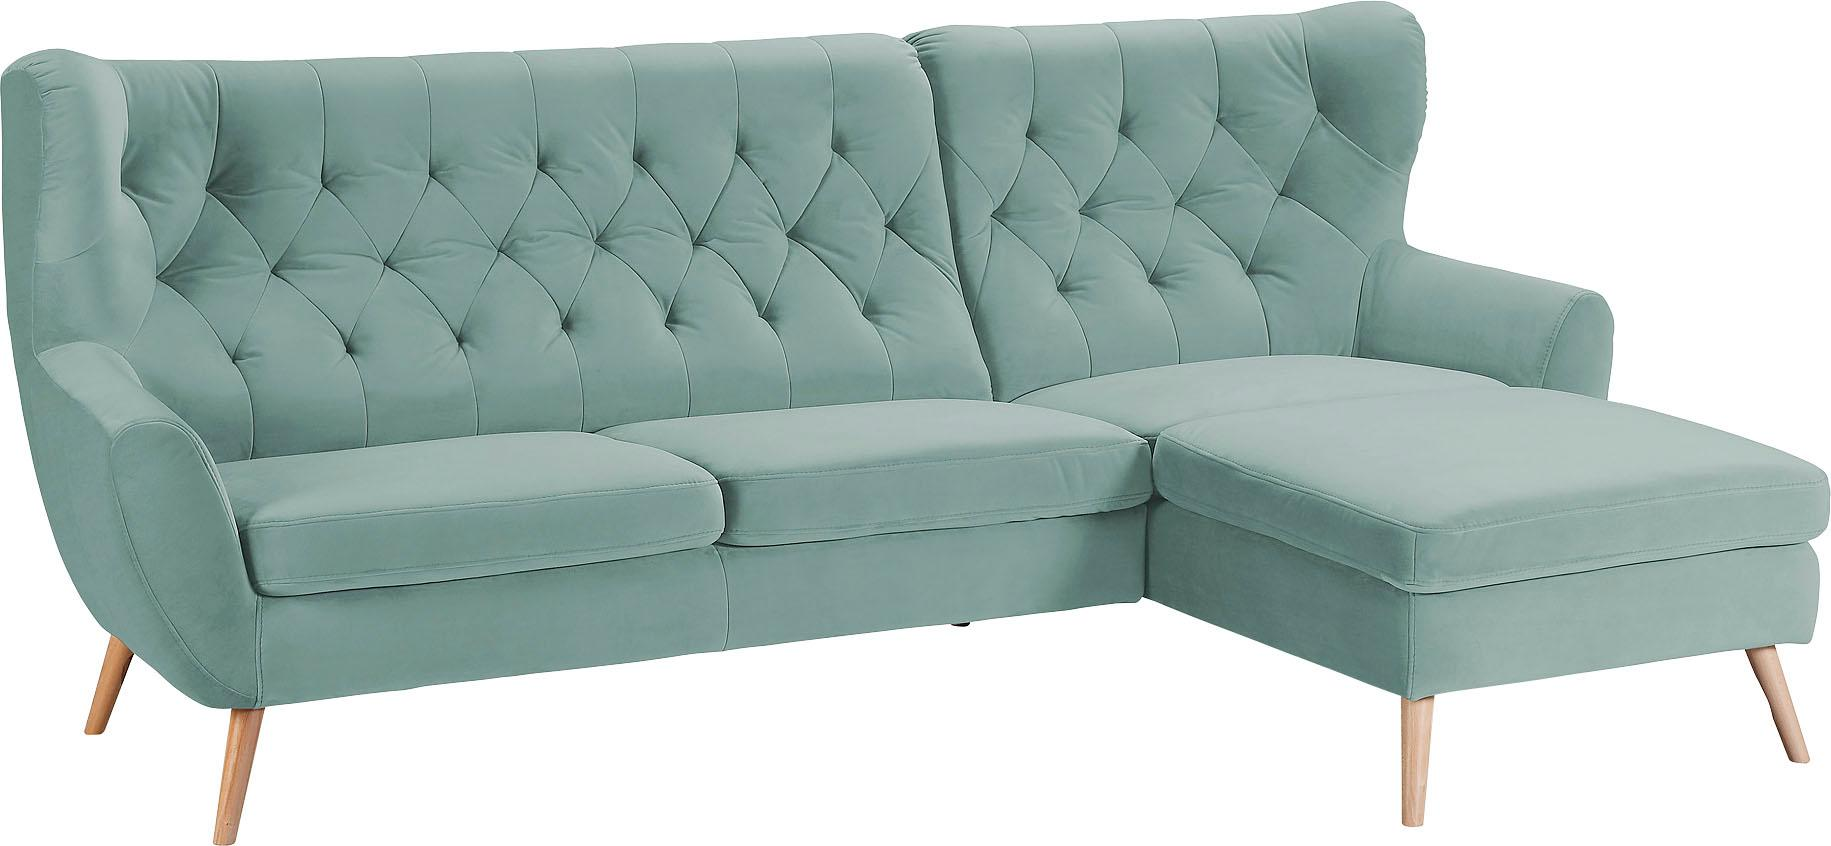 Home affaire Ecksofa VOSS